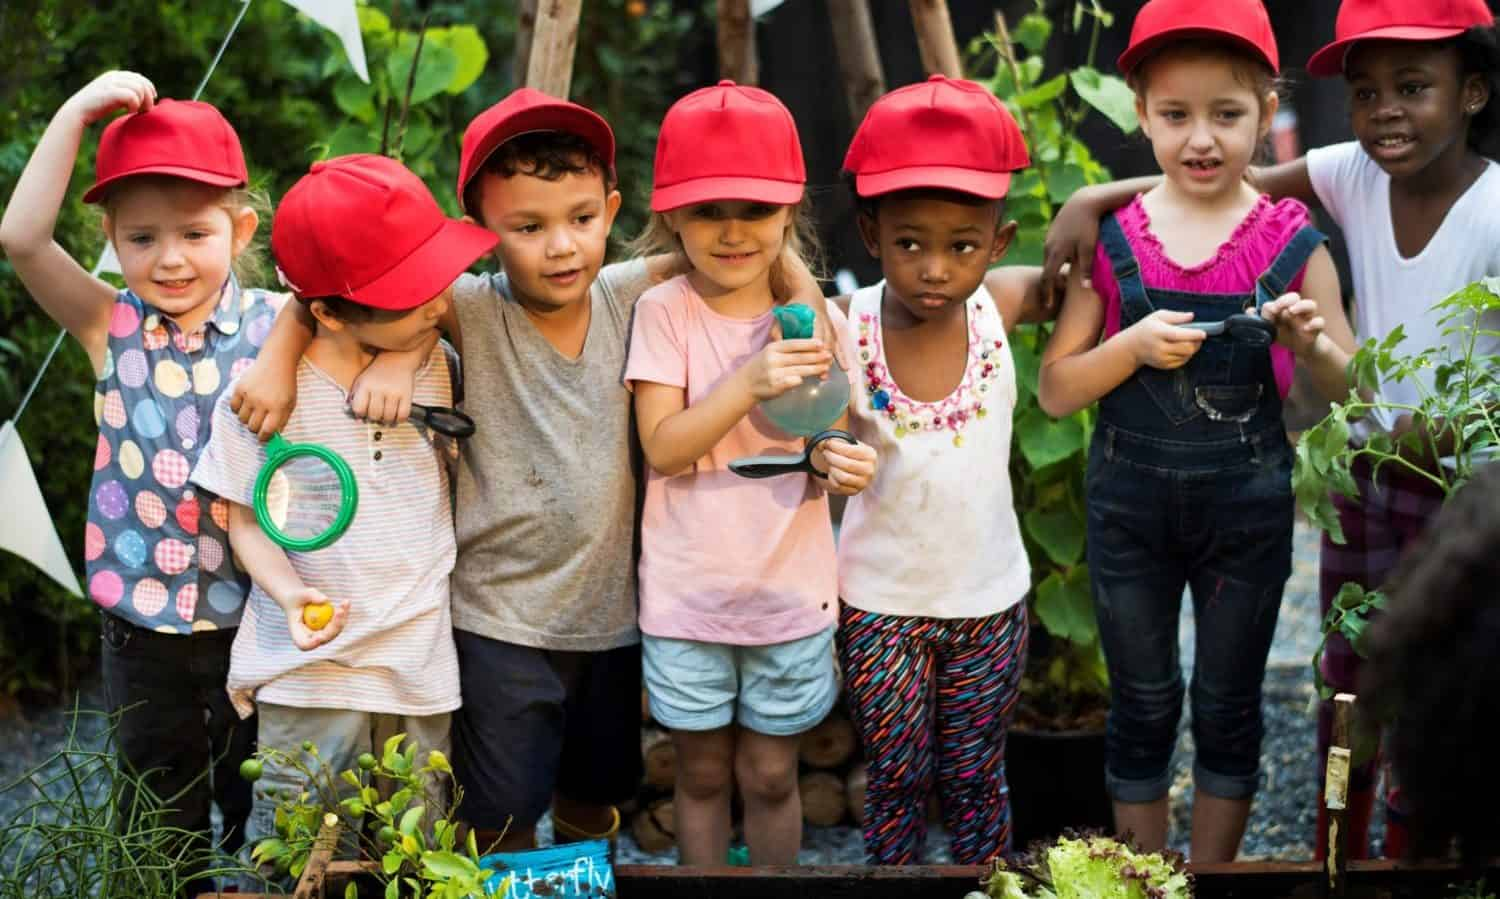 Sara Morris, President of The Beecher's Foundation, talks about consumer power and educating youth on the food system.